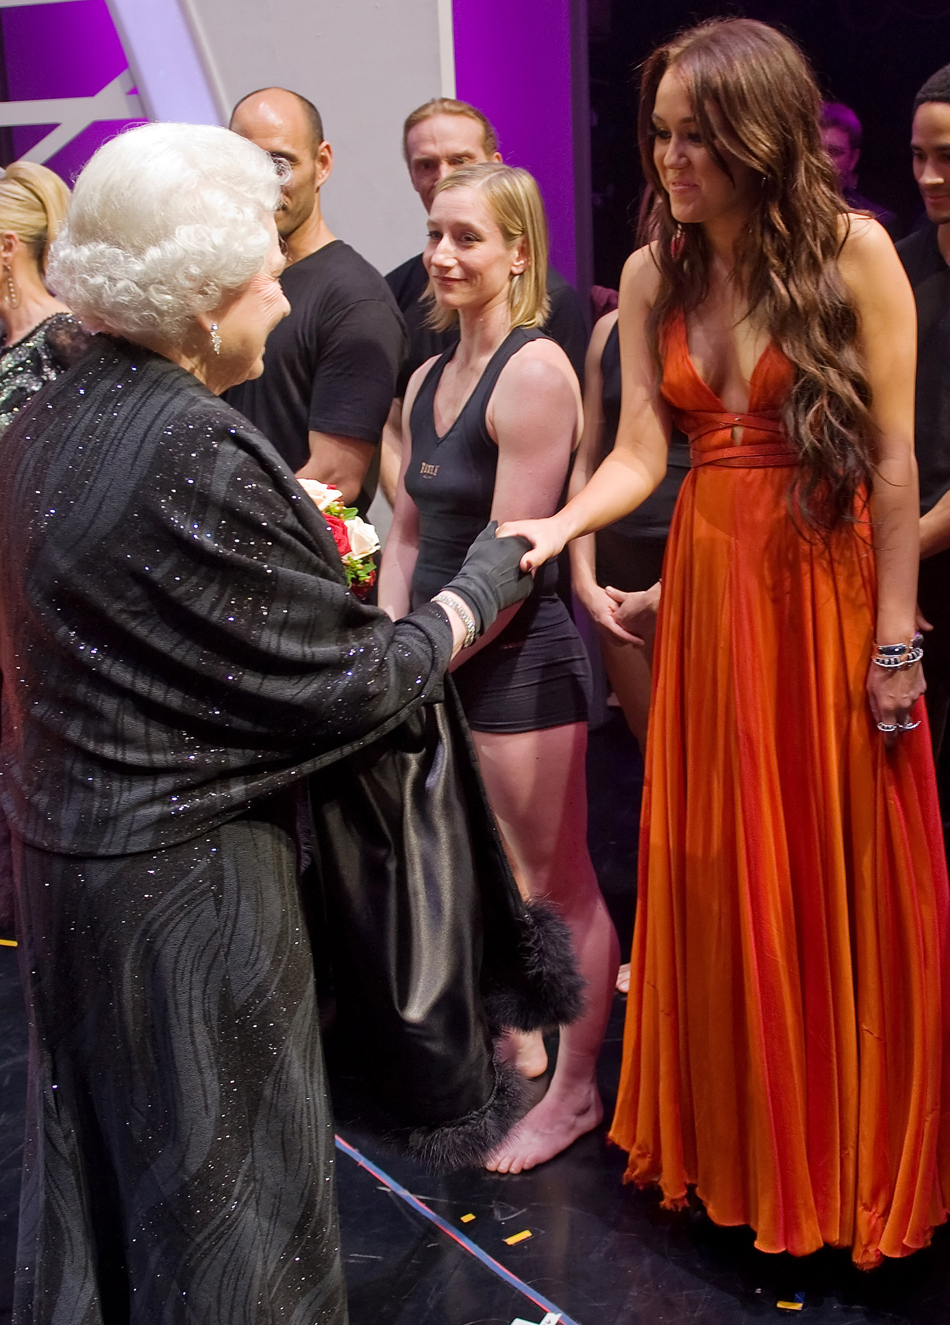 Miley cyrus busts out meeting the queen photo huffpost miley cyrus busts out meeting the queen photo m4hsunfo